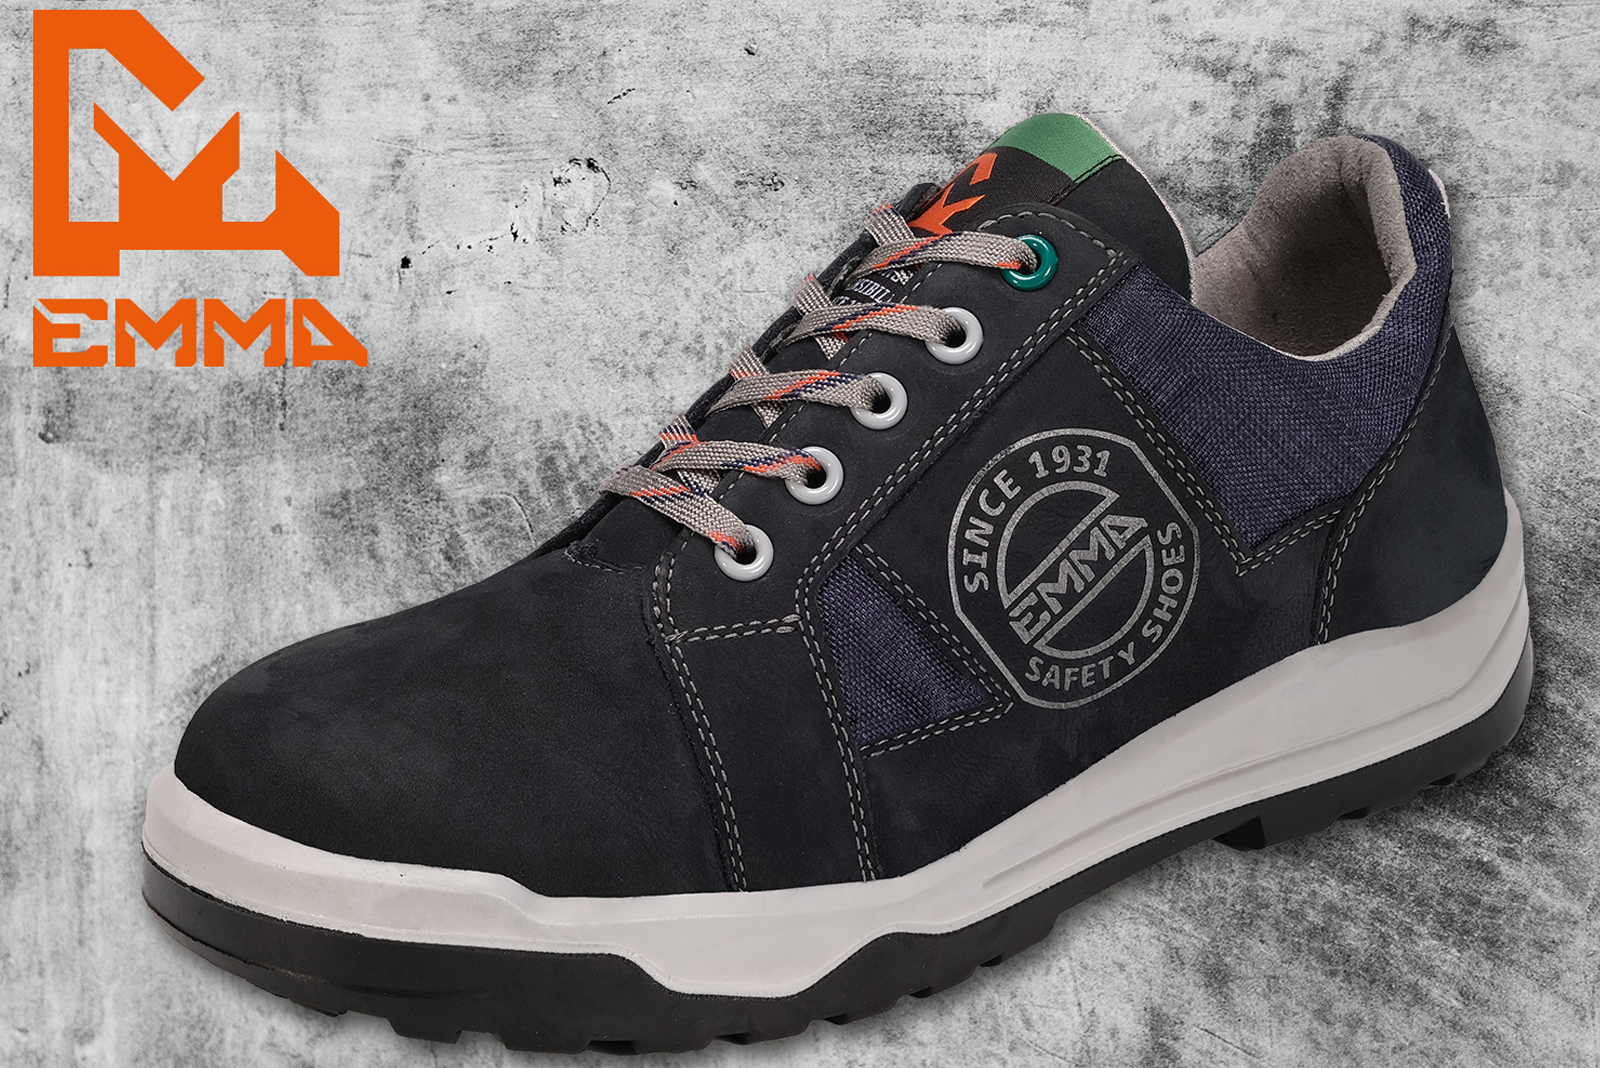 2 pairs of EMMA Safety shoes to win